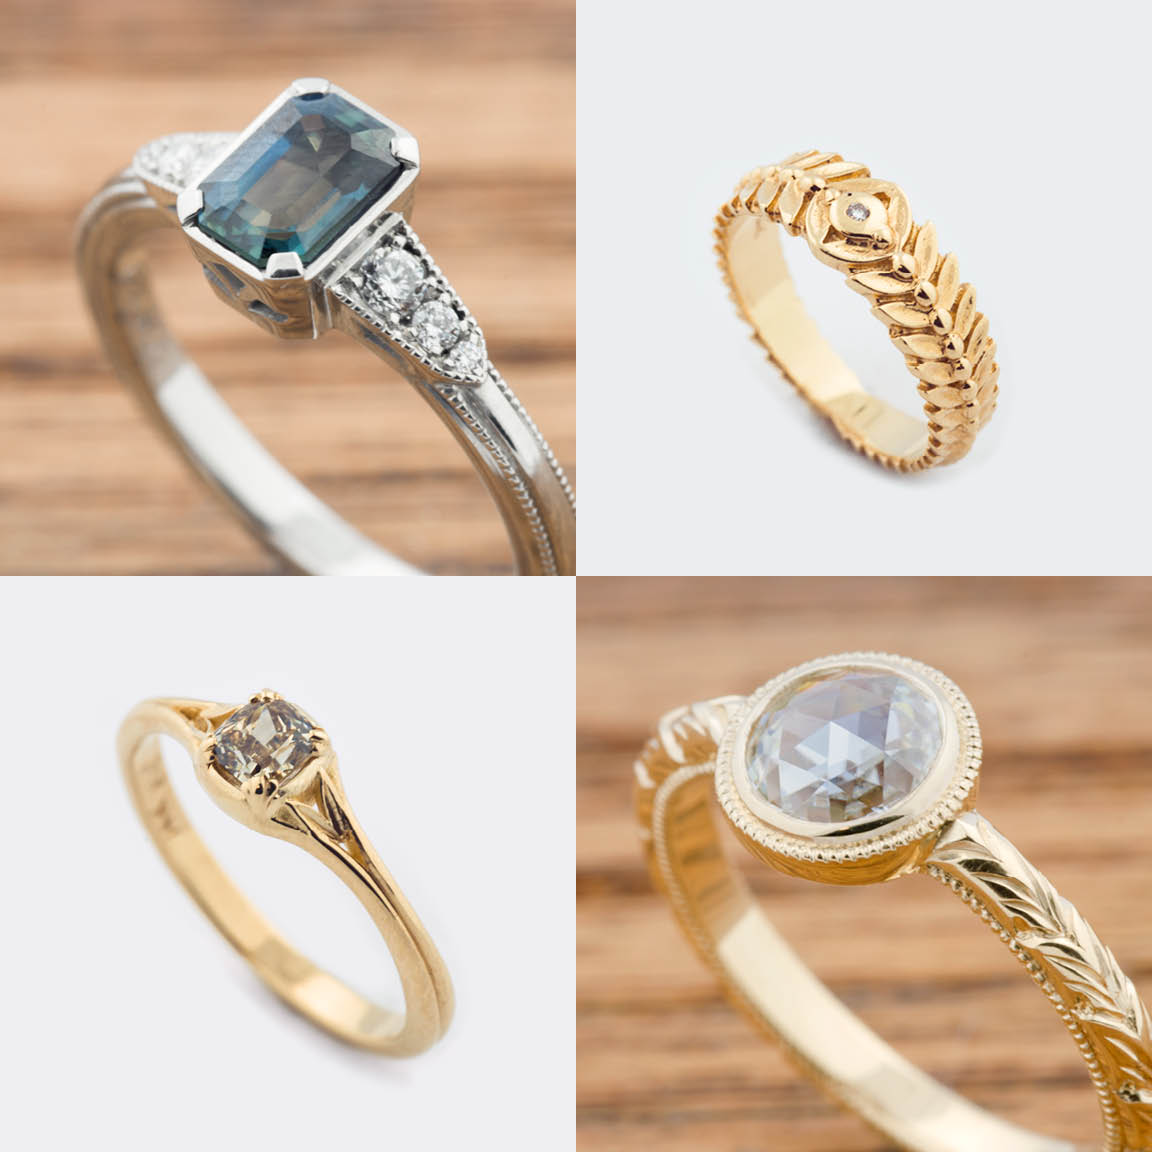 leaf images jewelery how i the vine flower really jewelry ring best not it rings style detail pinterest is different but this diamond my gold on art pretty engagement beautiful and s white exotic justaton like wedding